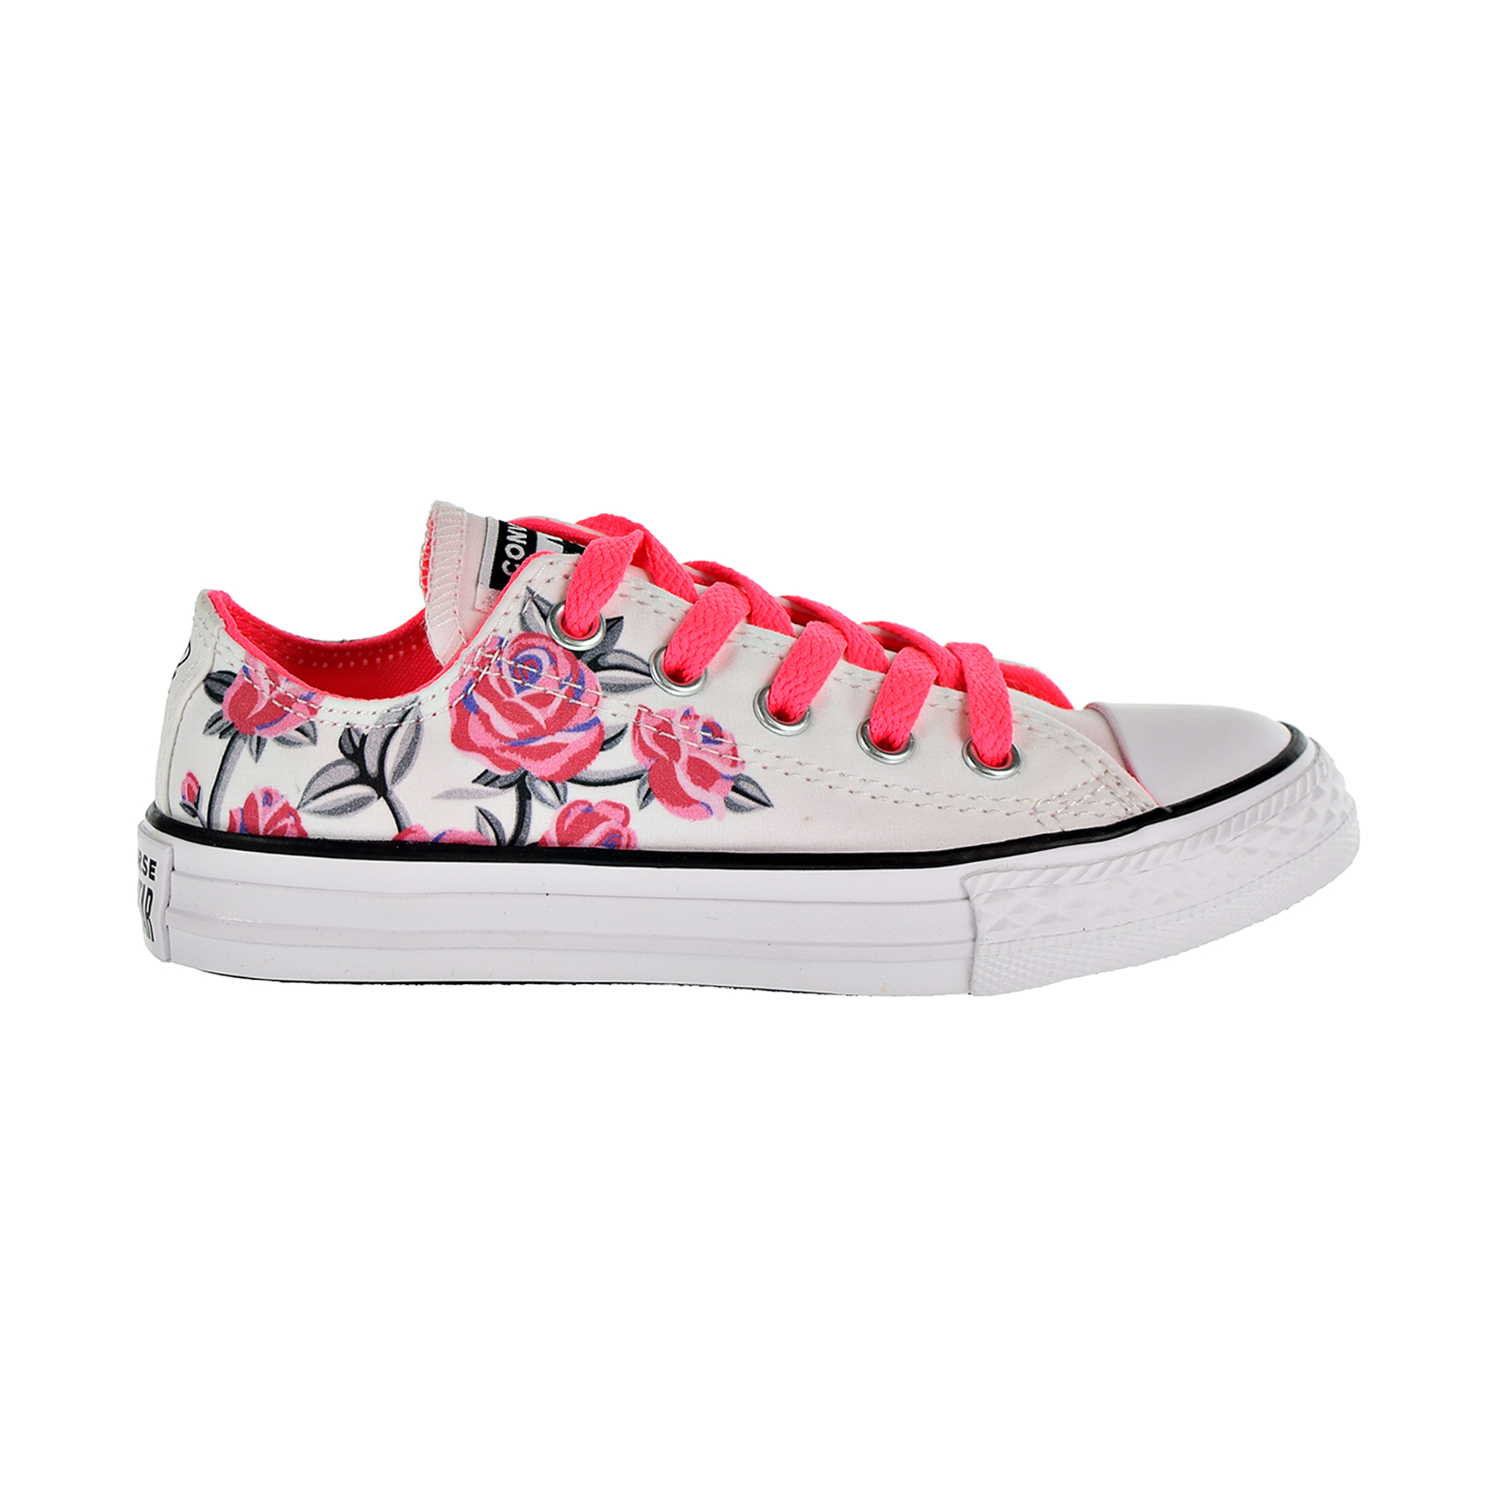 8ef4ab320a48 Details about Converse Chuck Taylor All Star Pretty Strong Kids  Shoes White Pink  663624F